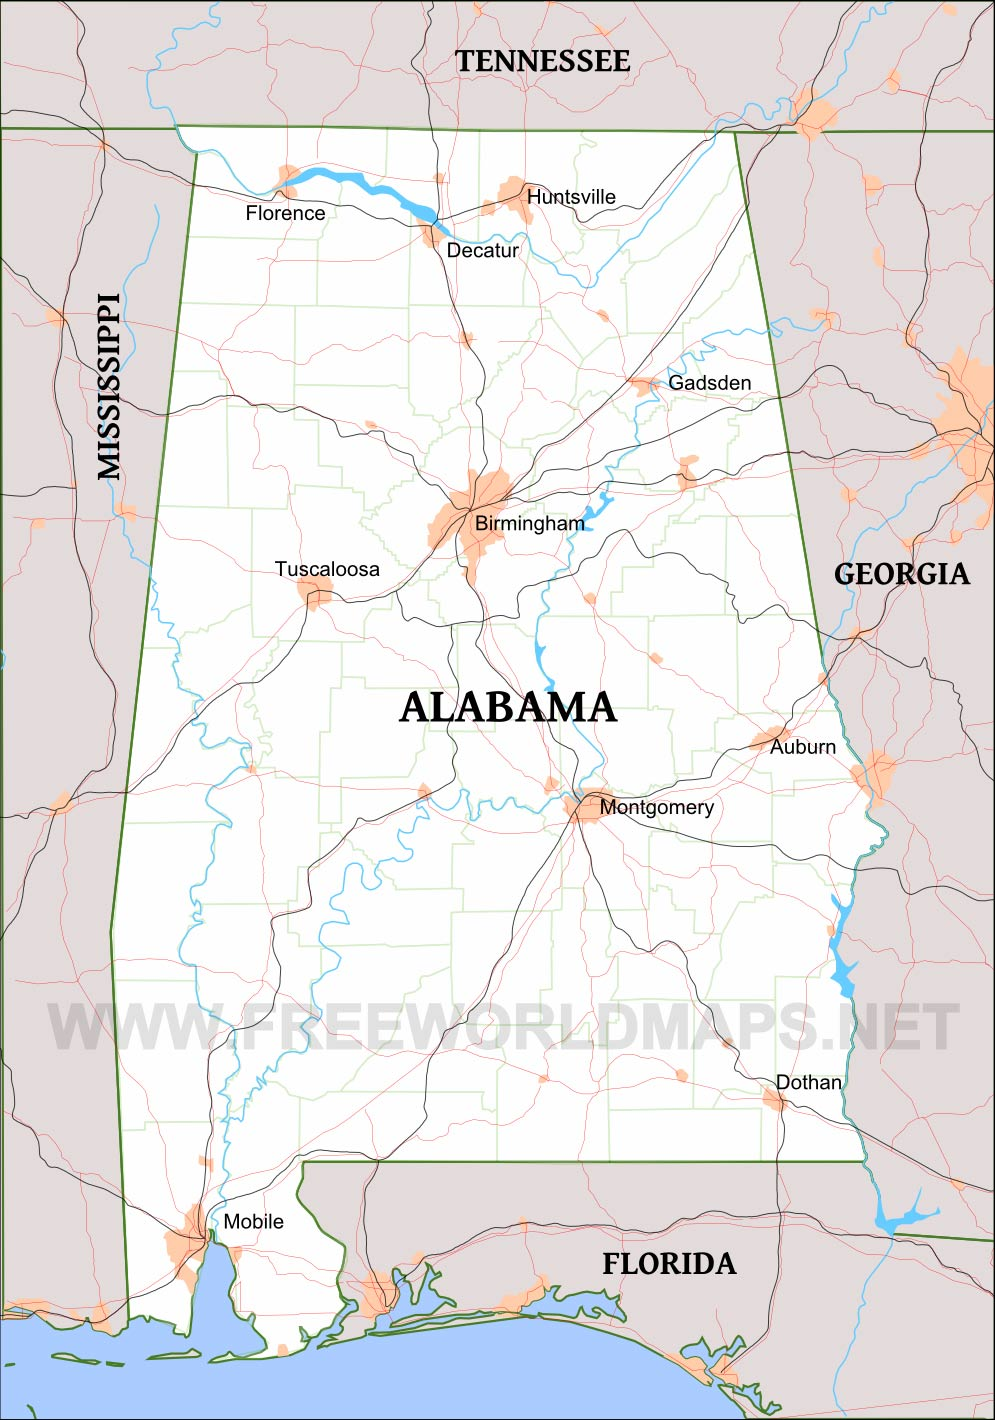 Detailed map of Alabama